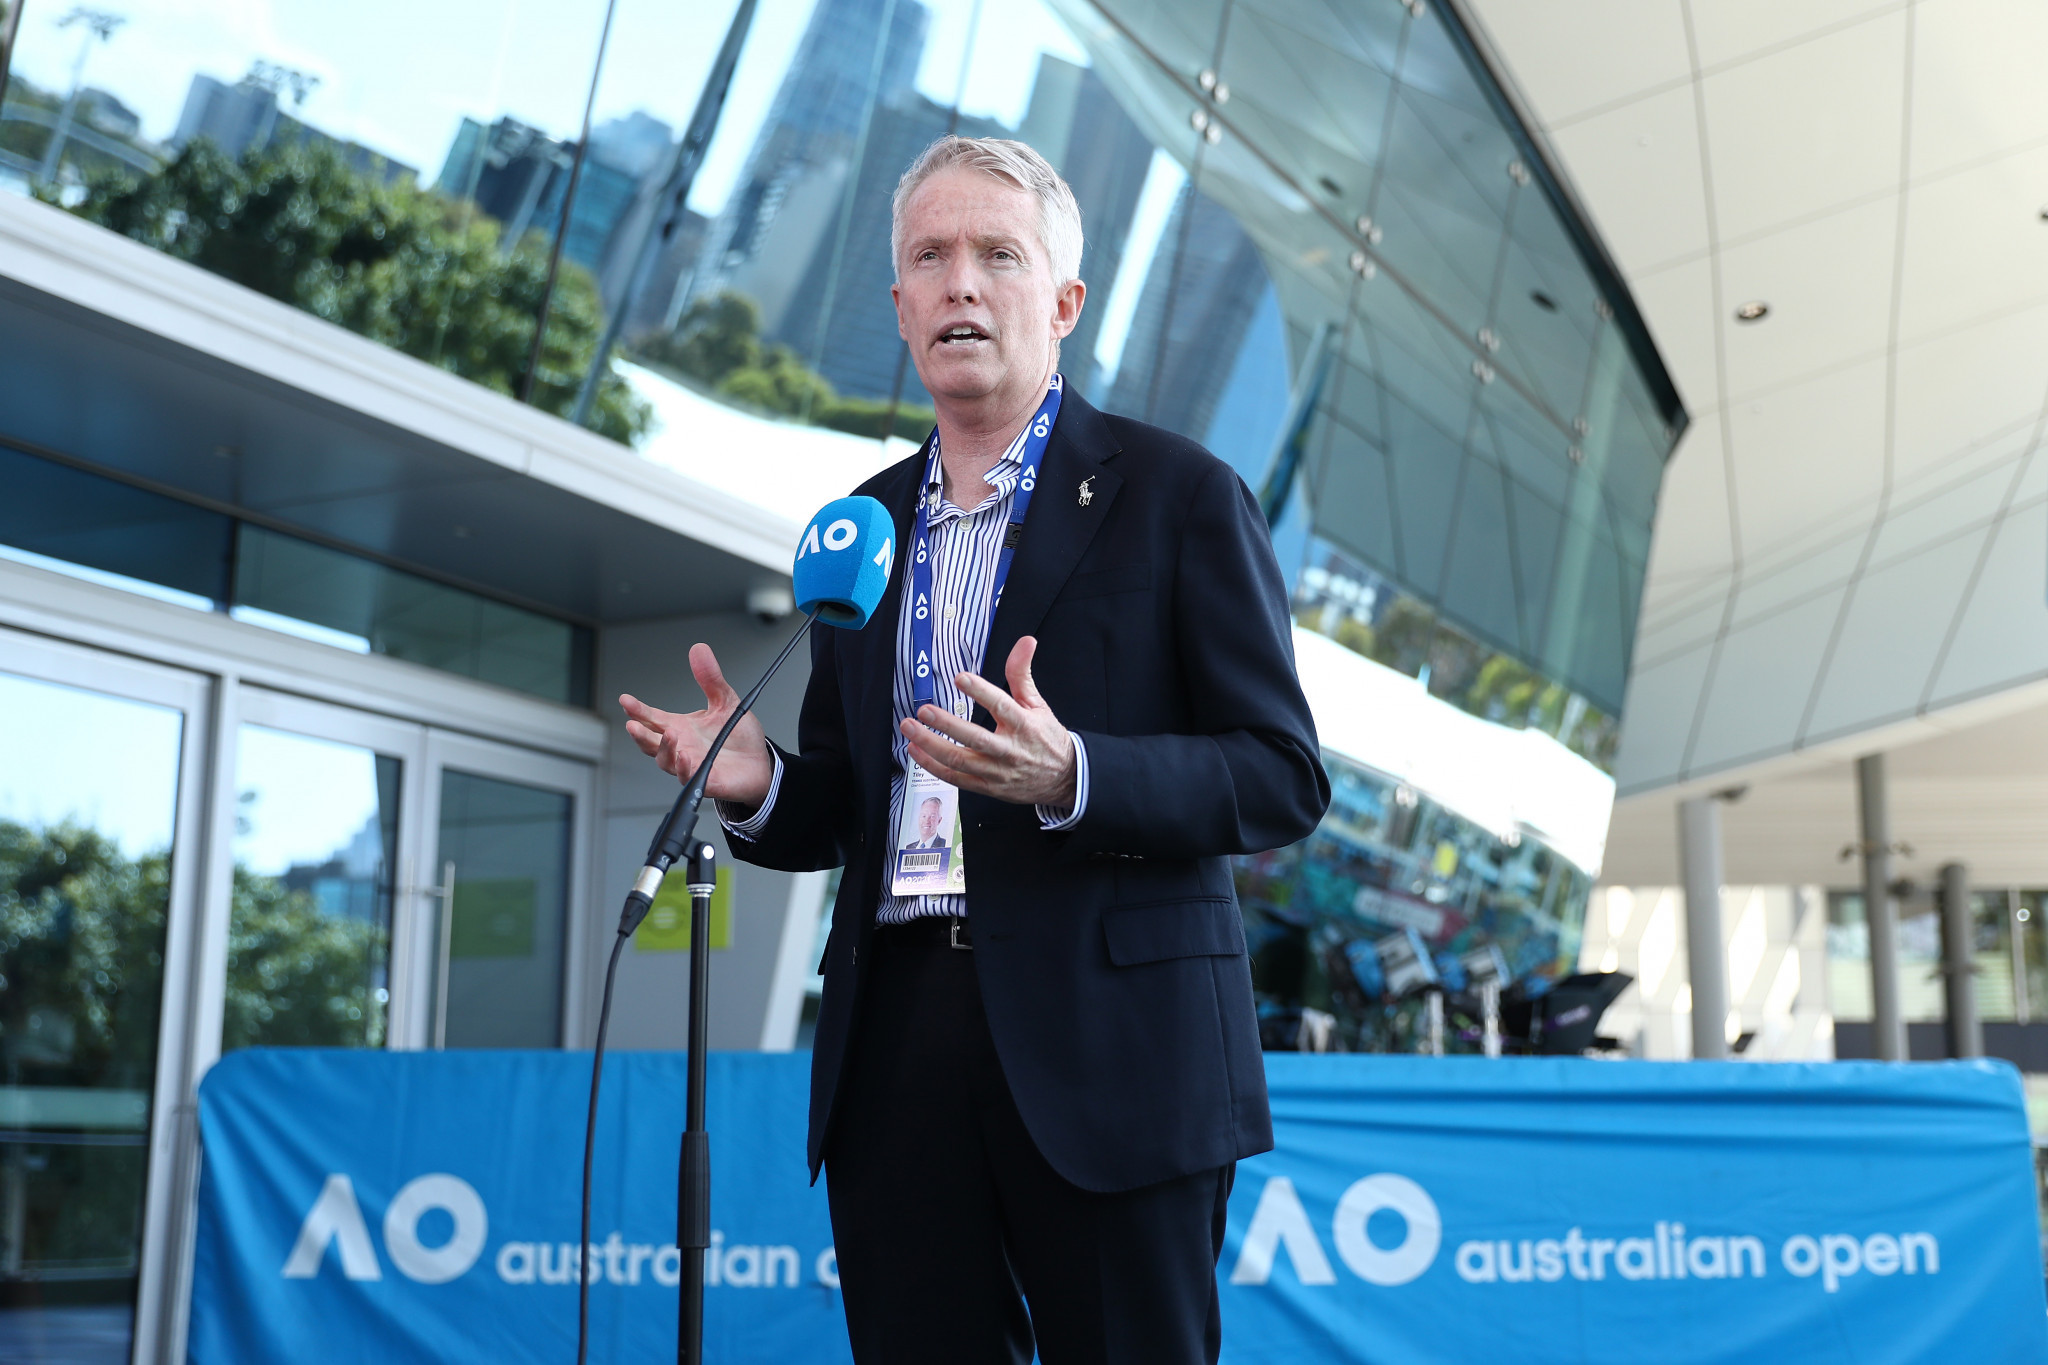 Tennis Australia chief executive Craig Tiley warned the COVID-19 protocol for Tokyo 2020 does not seem rigorous enough ©Getty Images